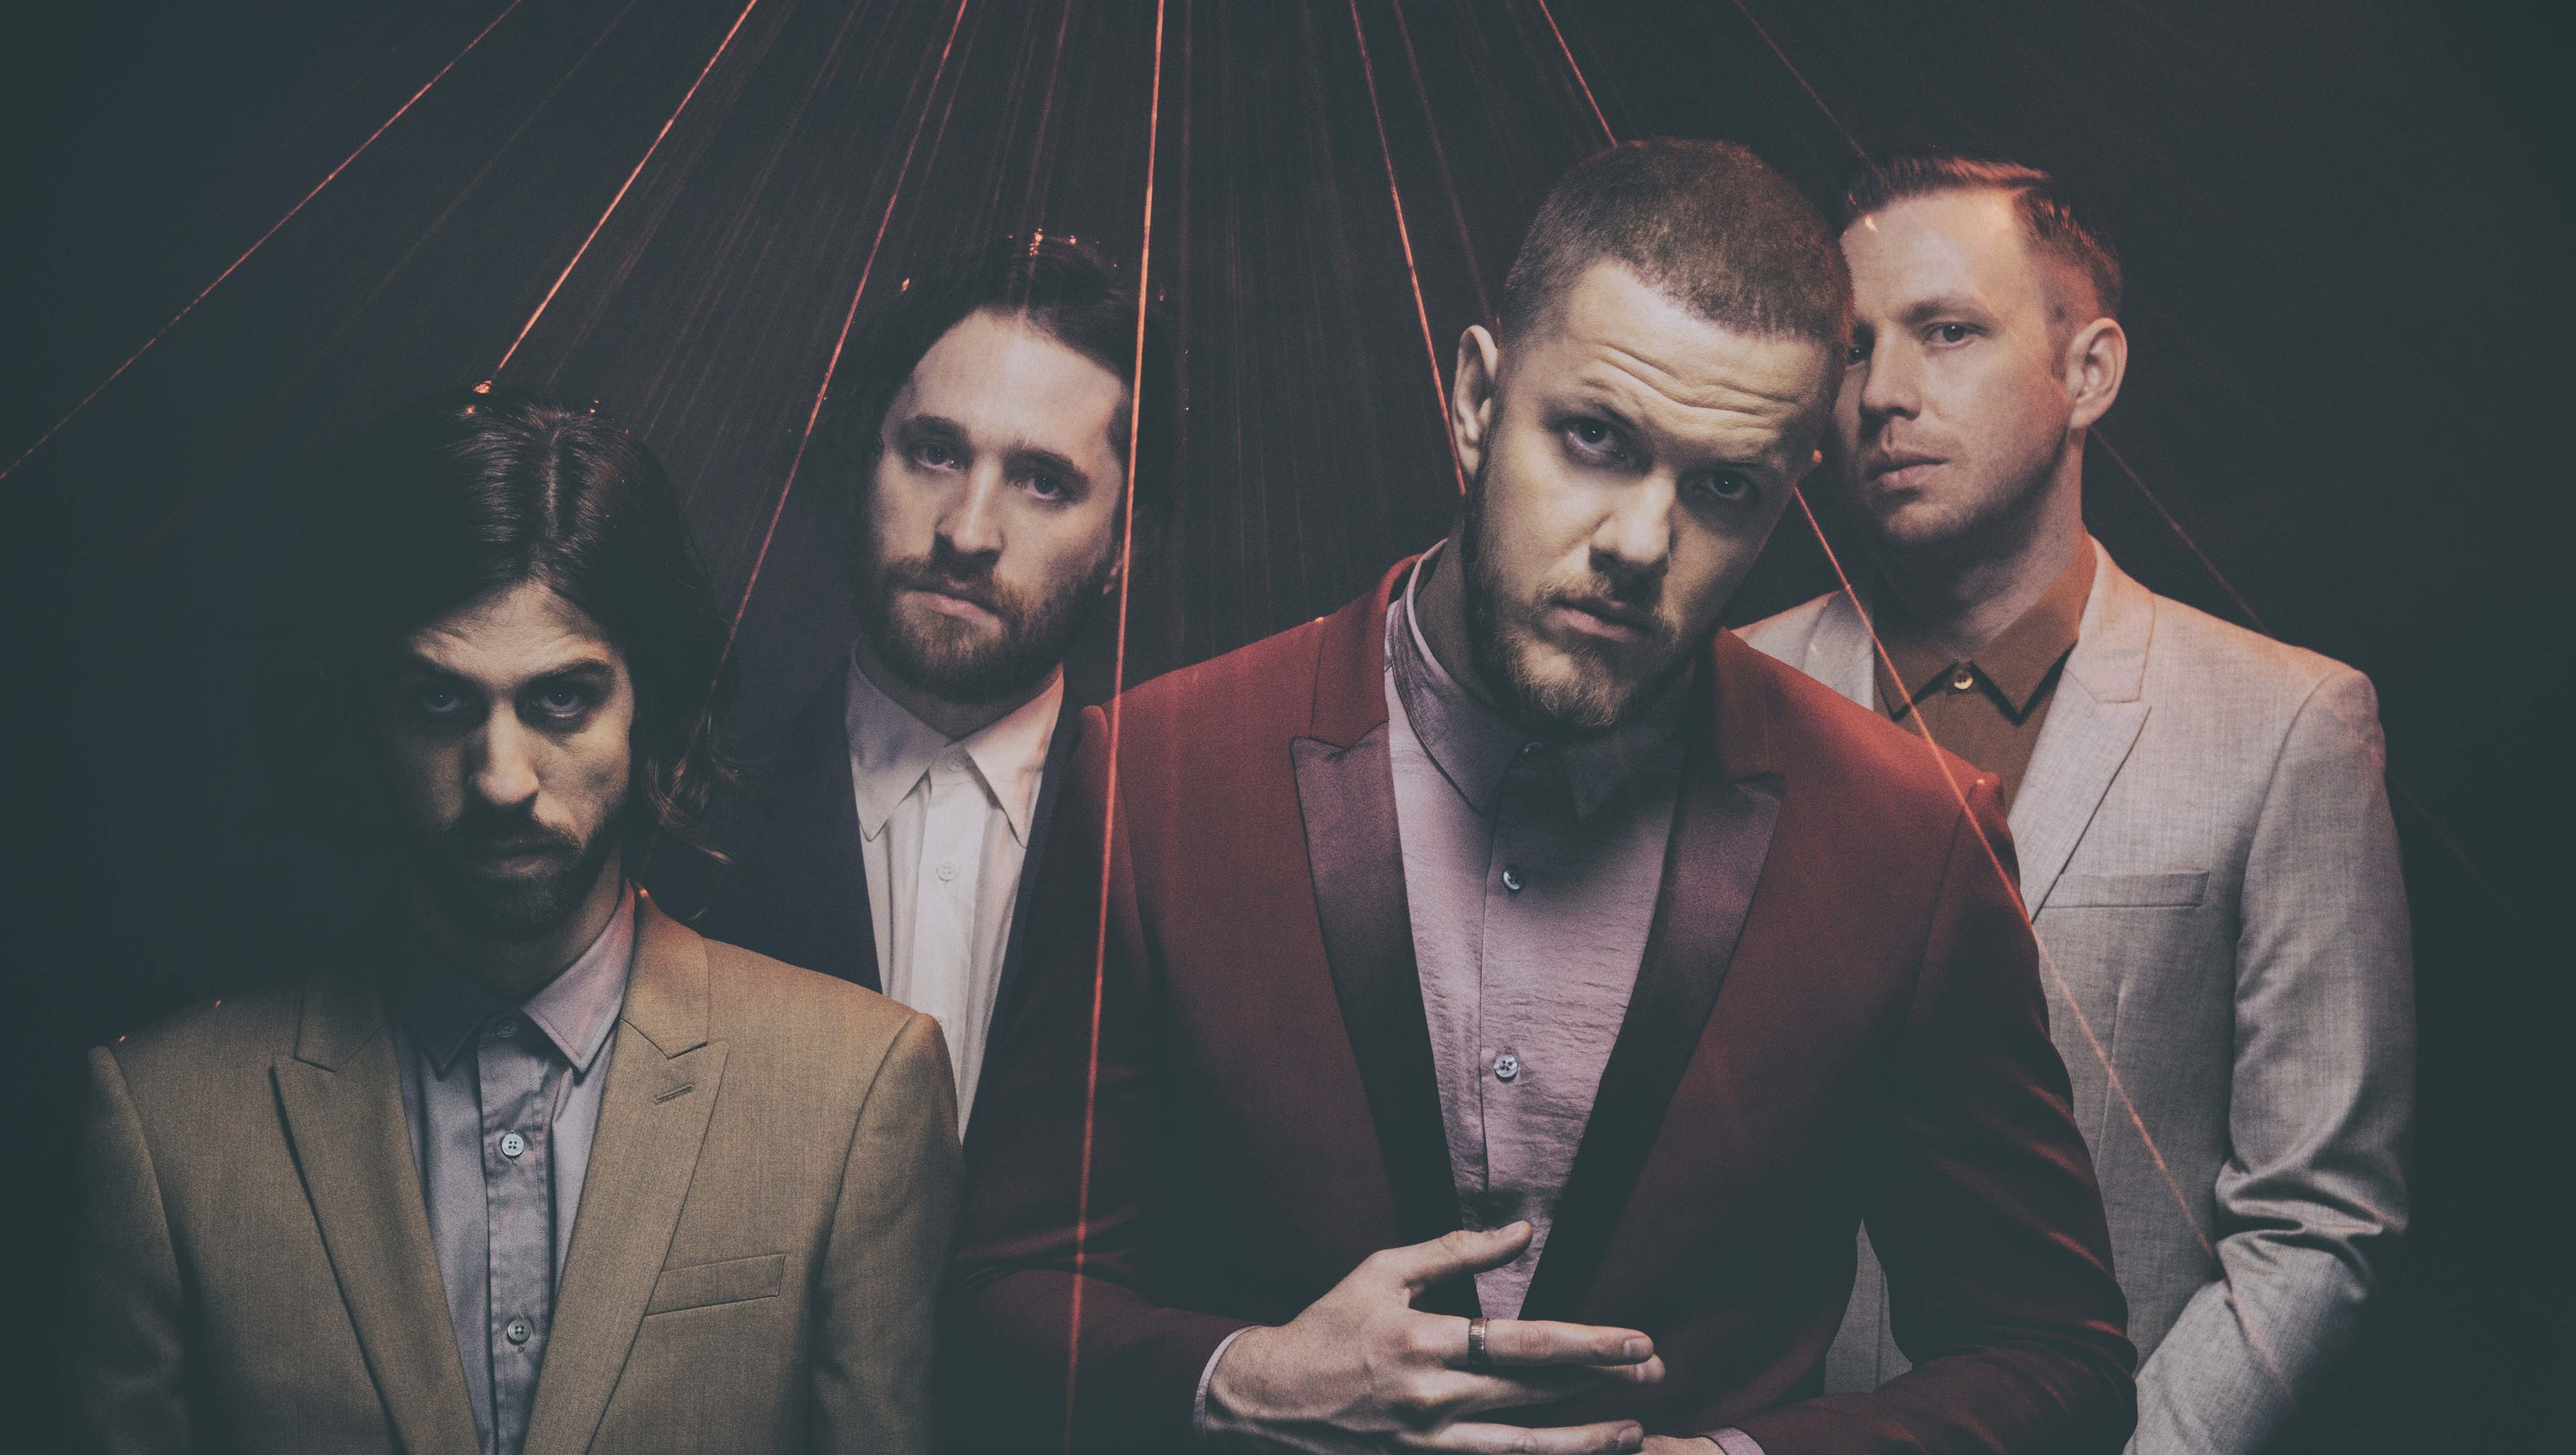 Ruoff Solar imagine dragons will play indiana in june